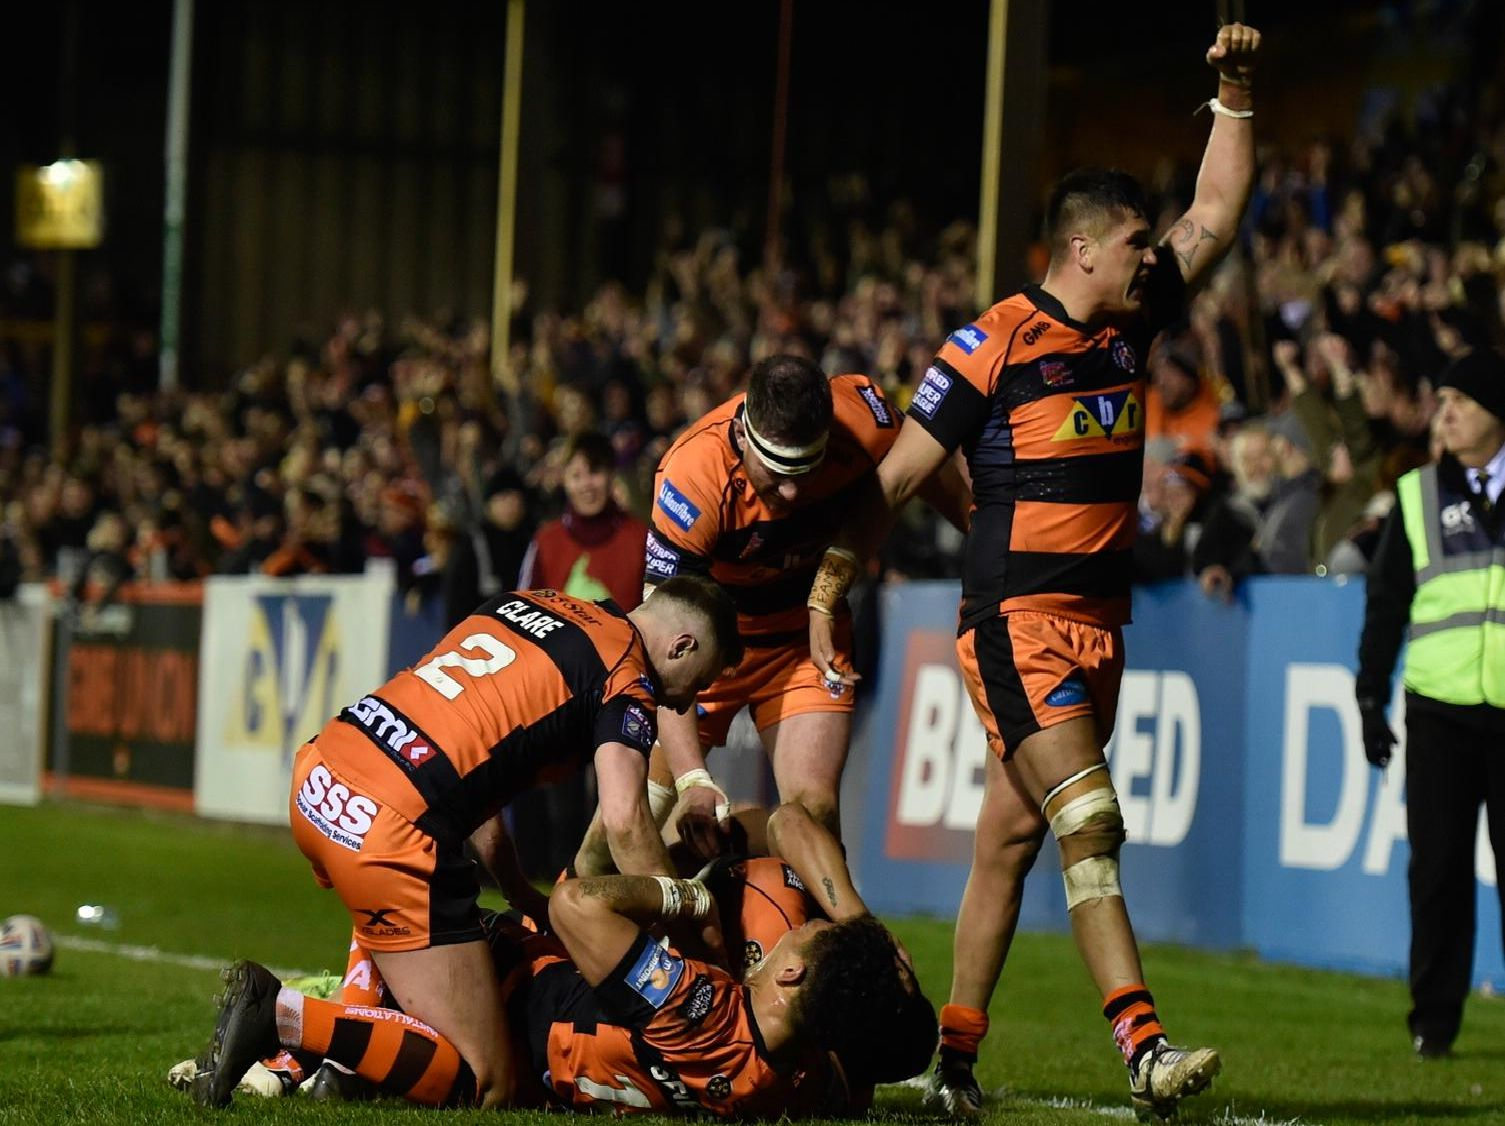 Castleford Tigers players celebrate as Peter Mata'utia goes over for the final try against Wigan. Picture: Matthew Merrick